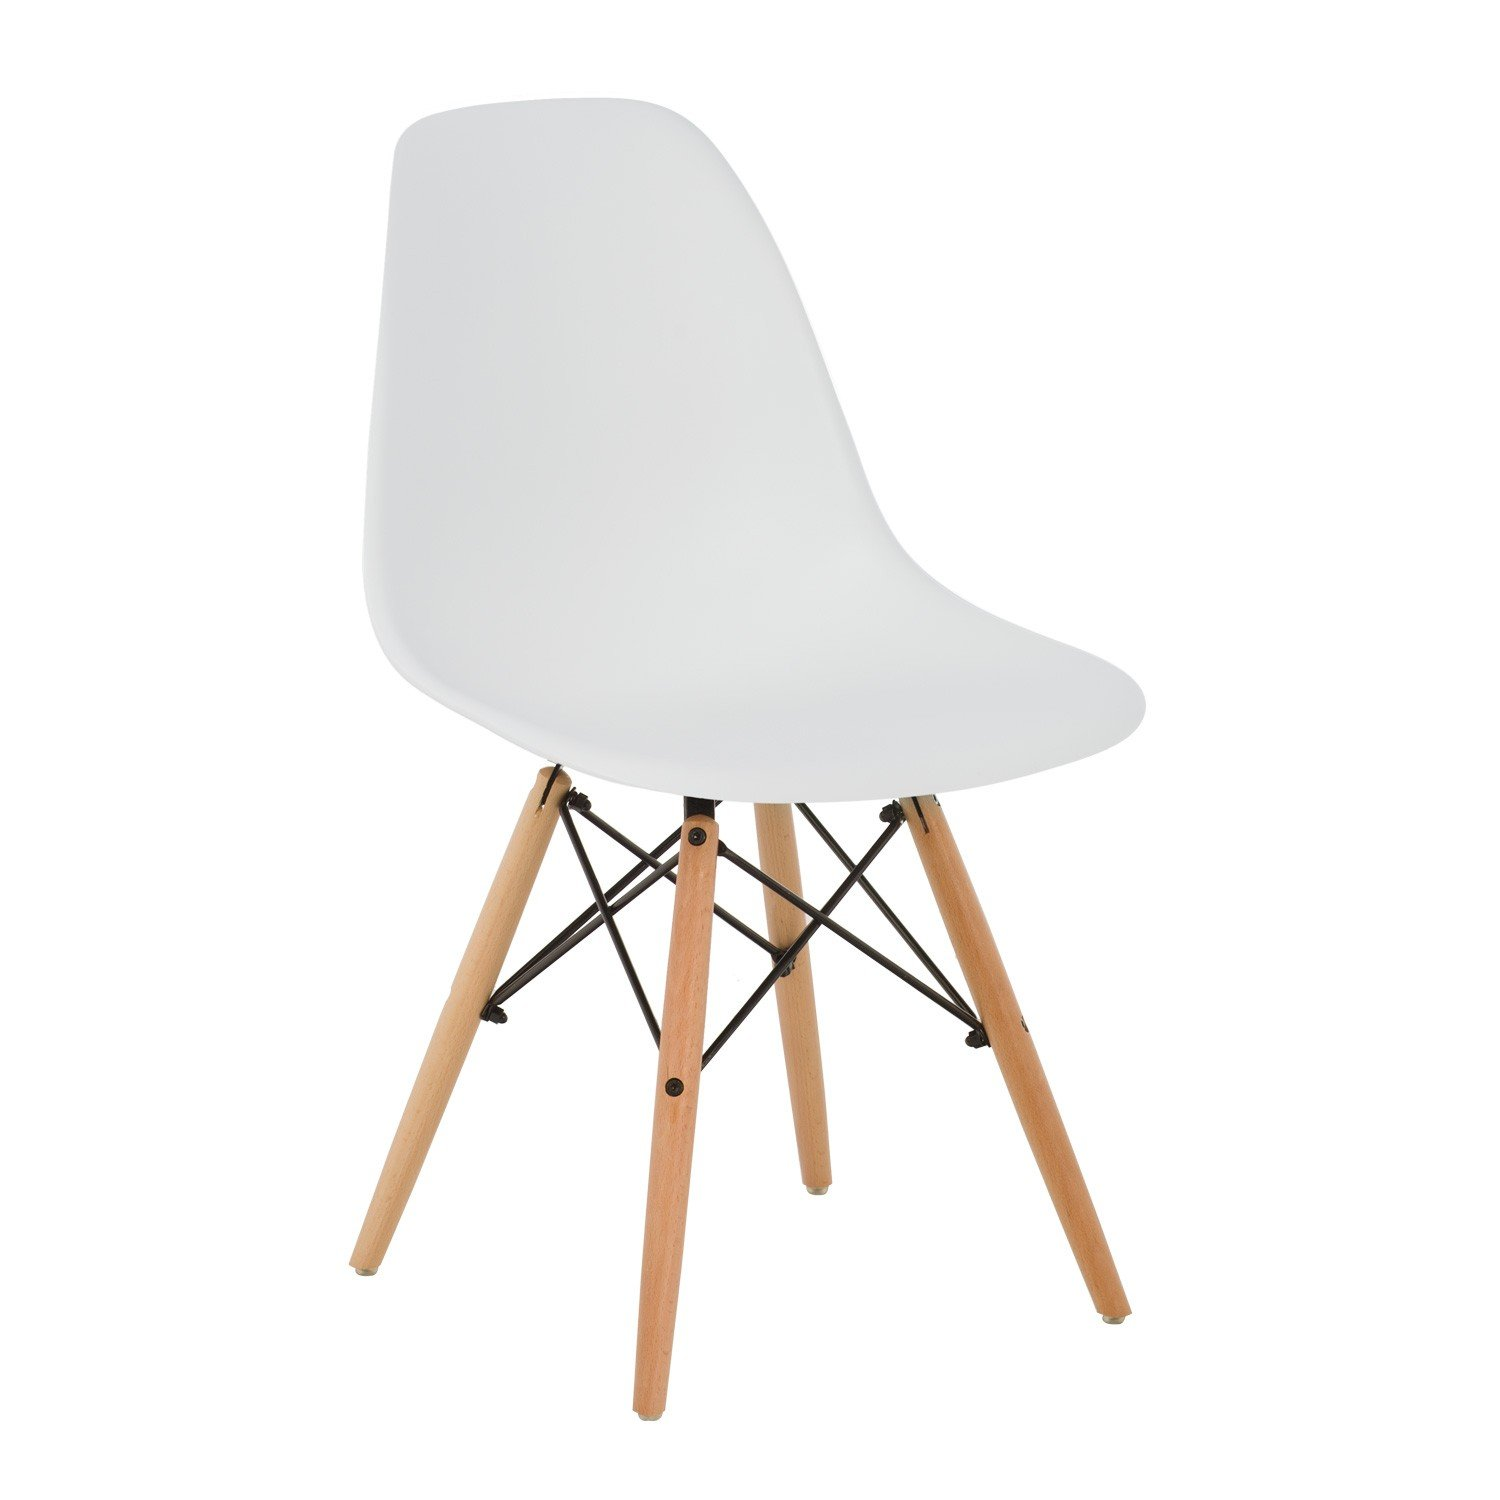 Silla Blanco Madera Natural vintagehttps://amzn.to/2Ek6t4y